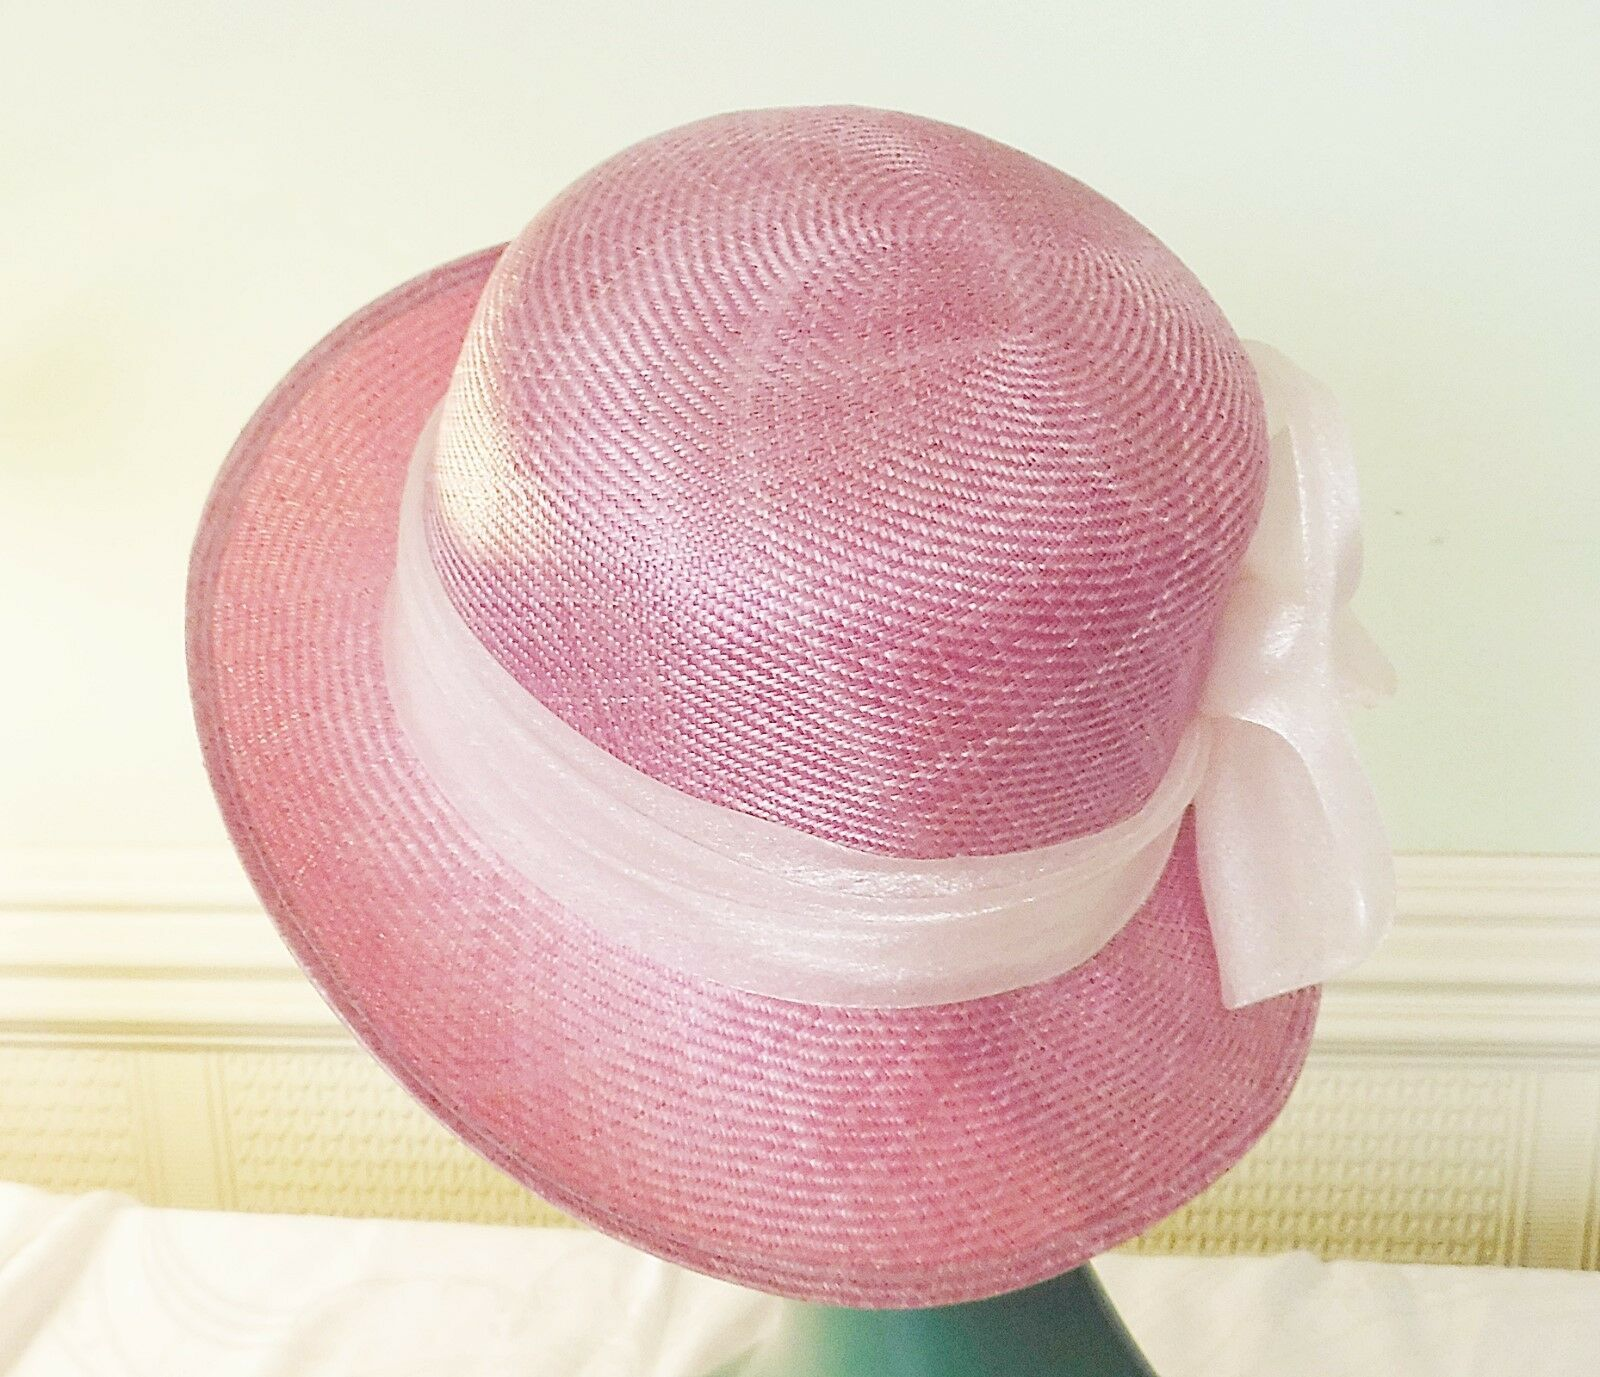 *EXQUISITE VINTAGE LILACY PINK TWEED SISSAL STRAW HAT LIGHTER BAND & ROSSETTE